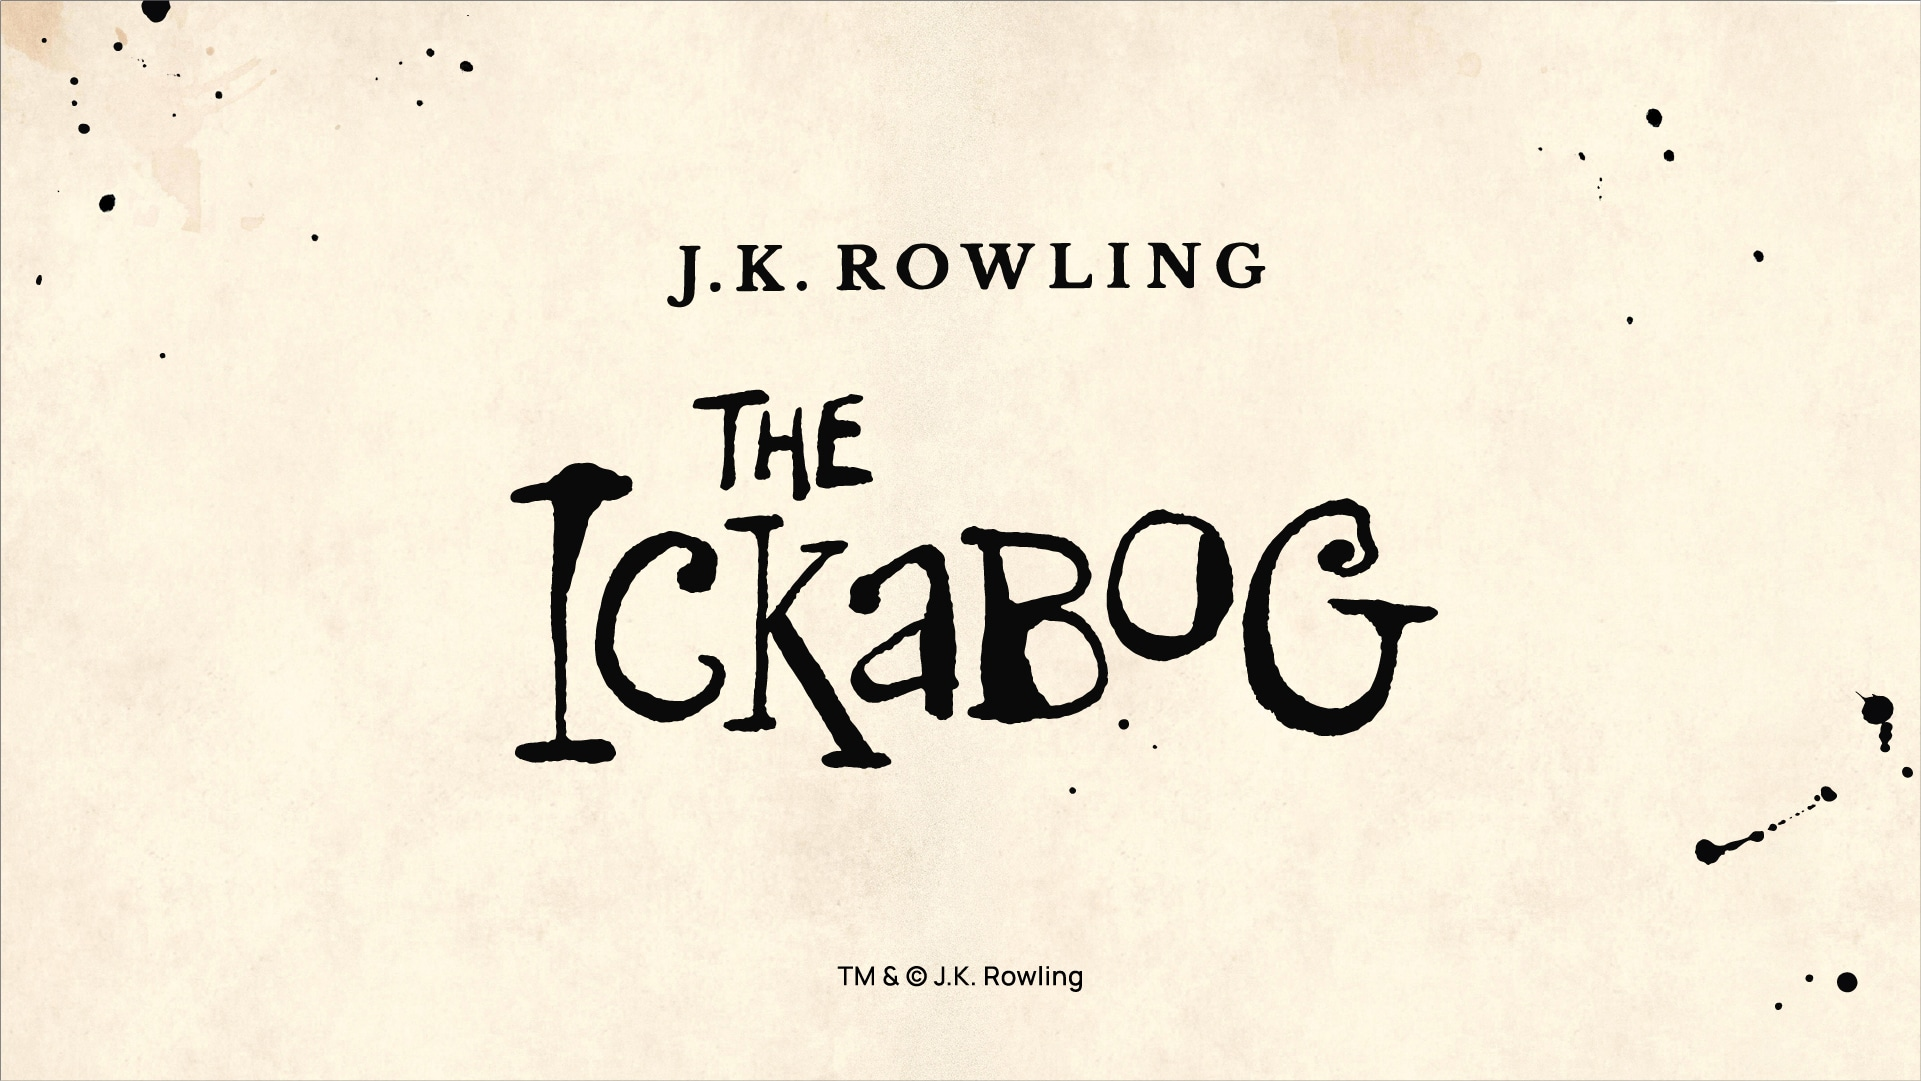 J. K. Rowling Competition